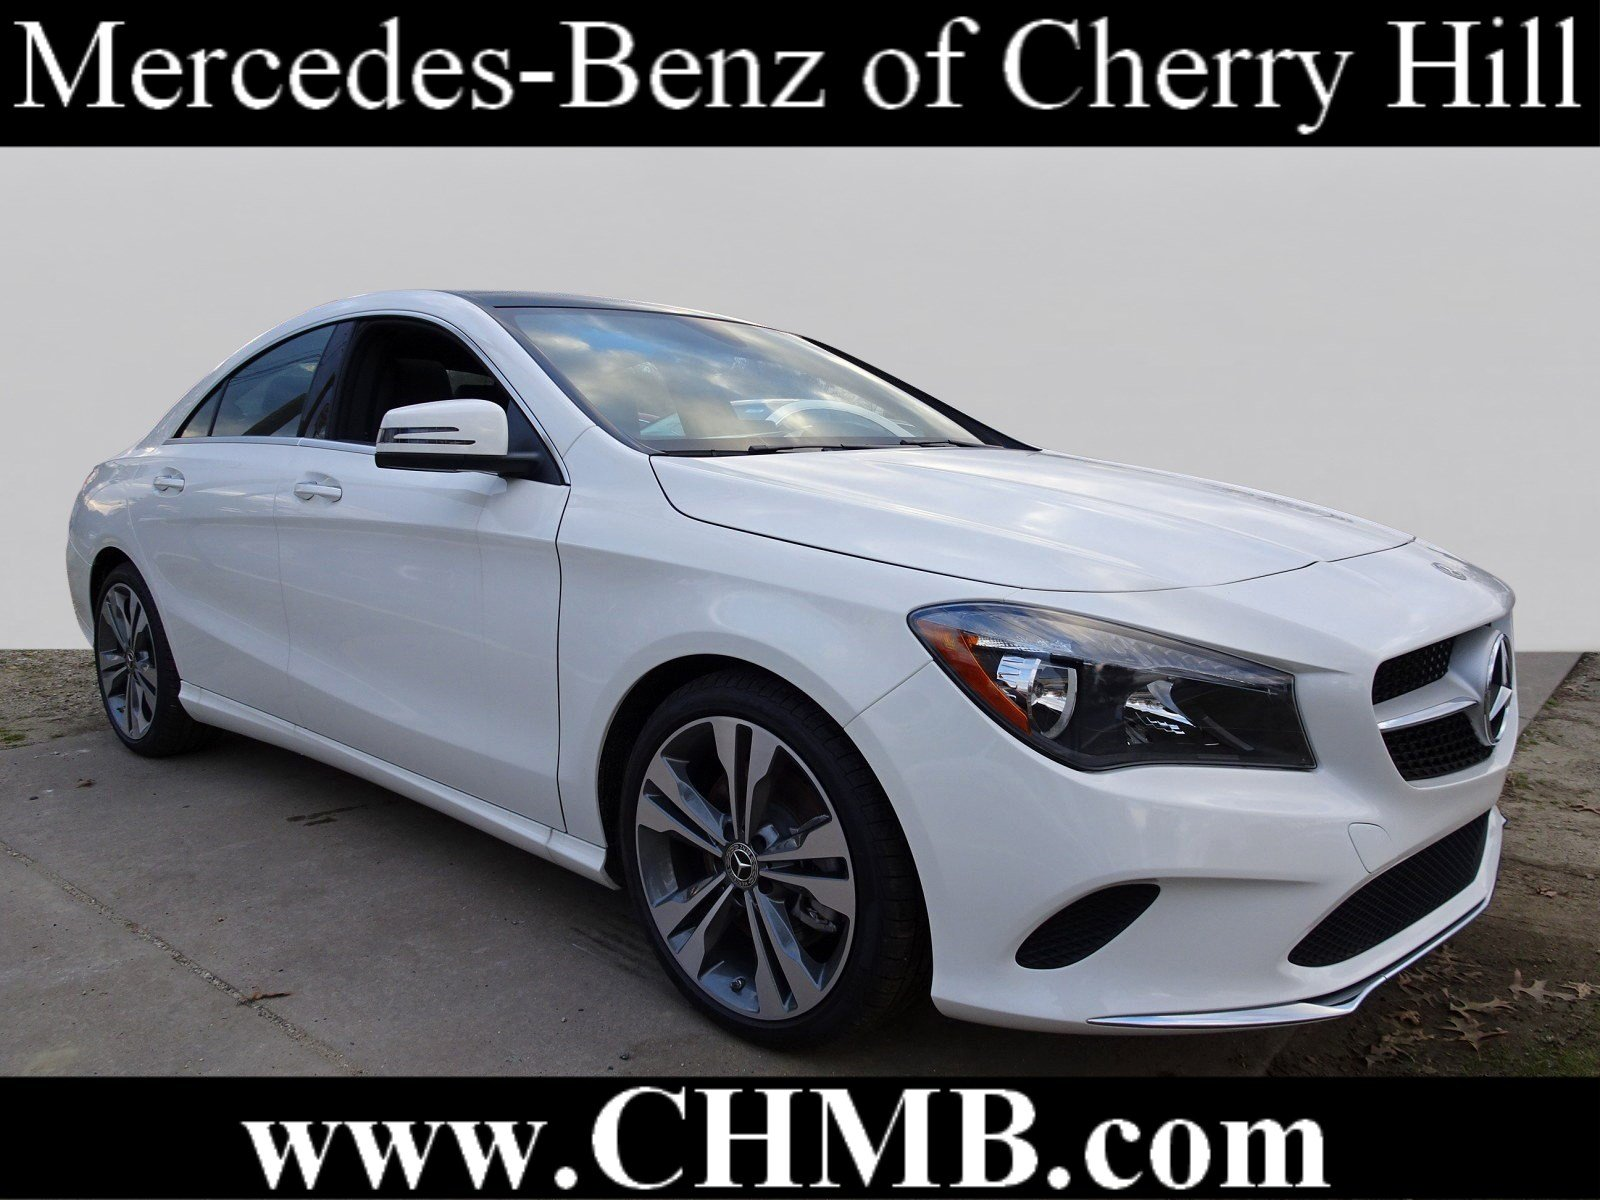 New 2019 Mercedes Benz CLA CLA 250 Coupe in Cherry Hill M2276